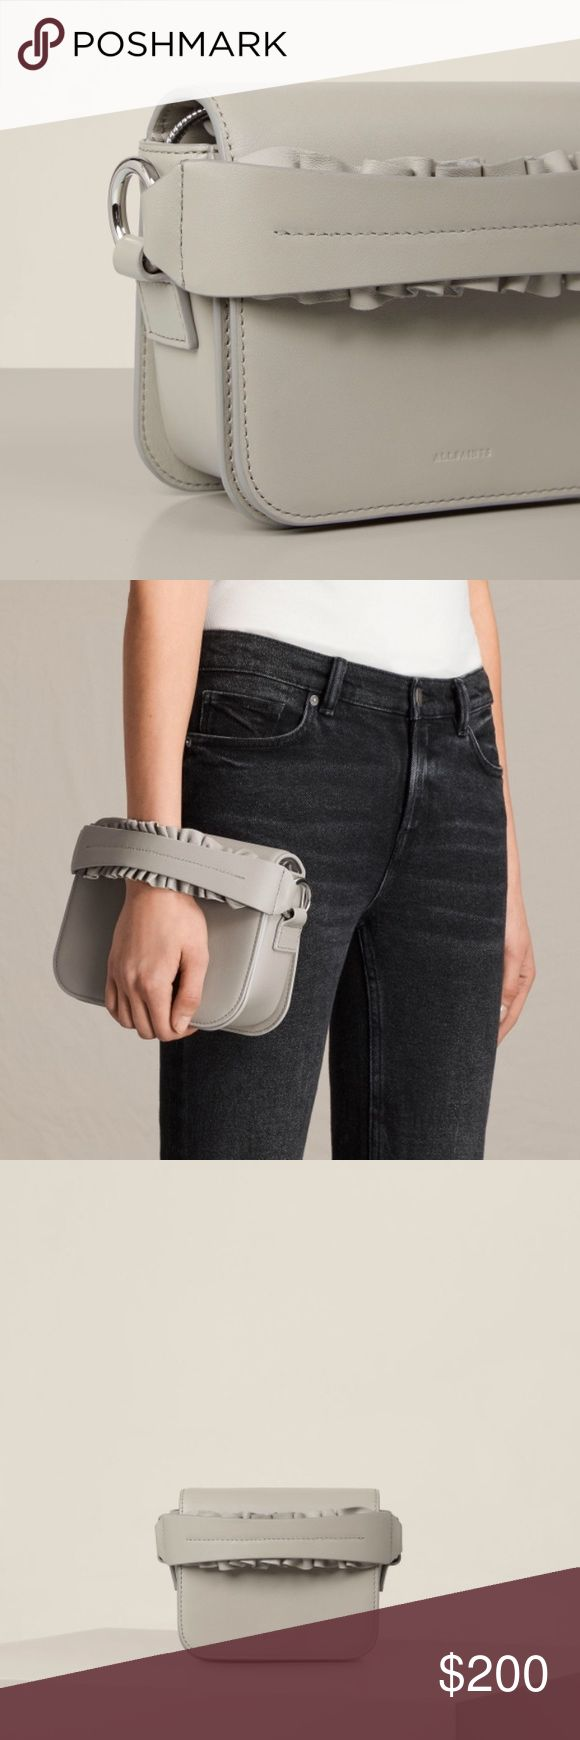 AllSaints Clutch bag NWT Color is light cement. Original price $278. Comes with dust bag. Also has a sliver chain All Saints Bags Clutches & Wristlets